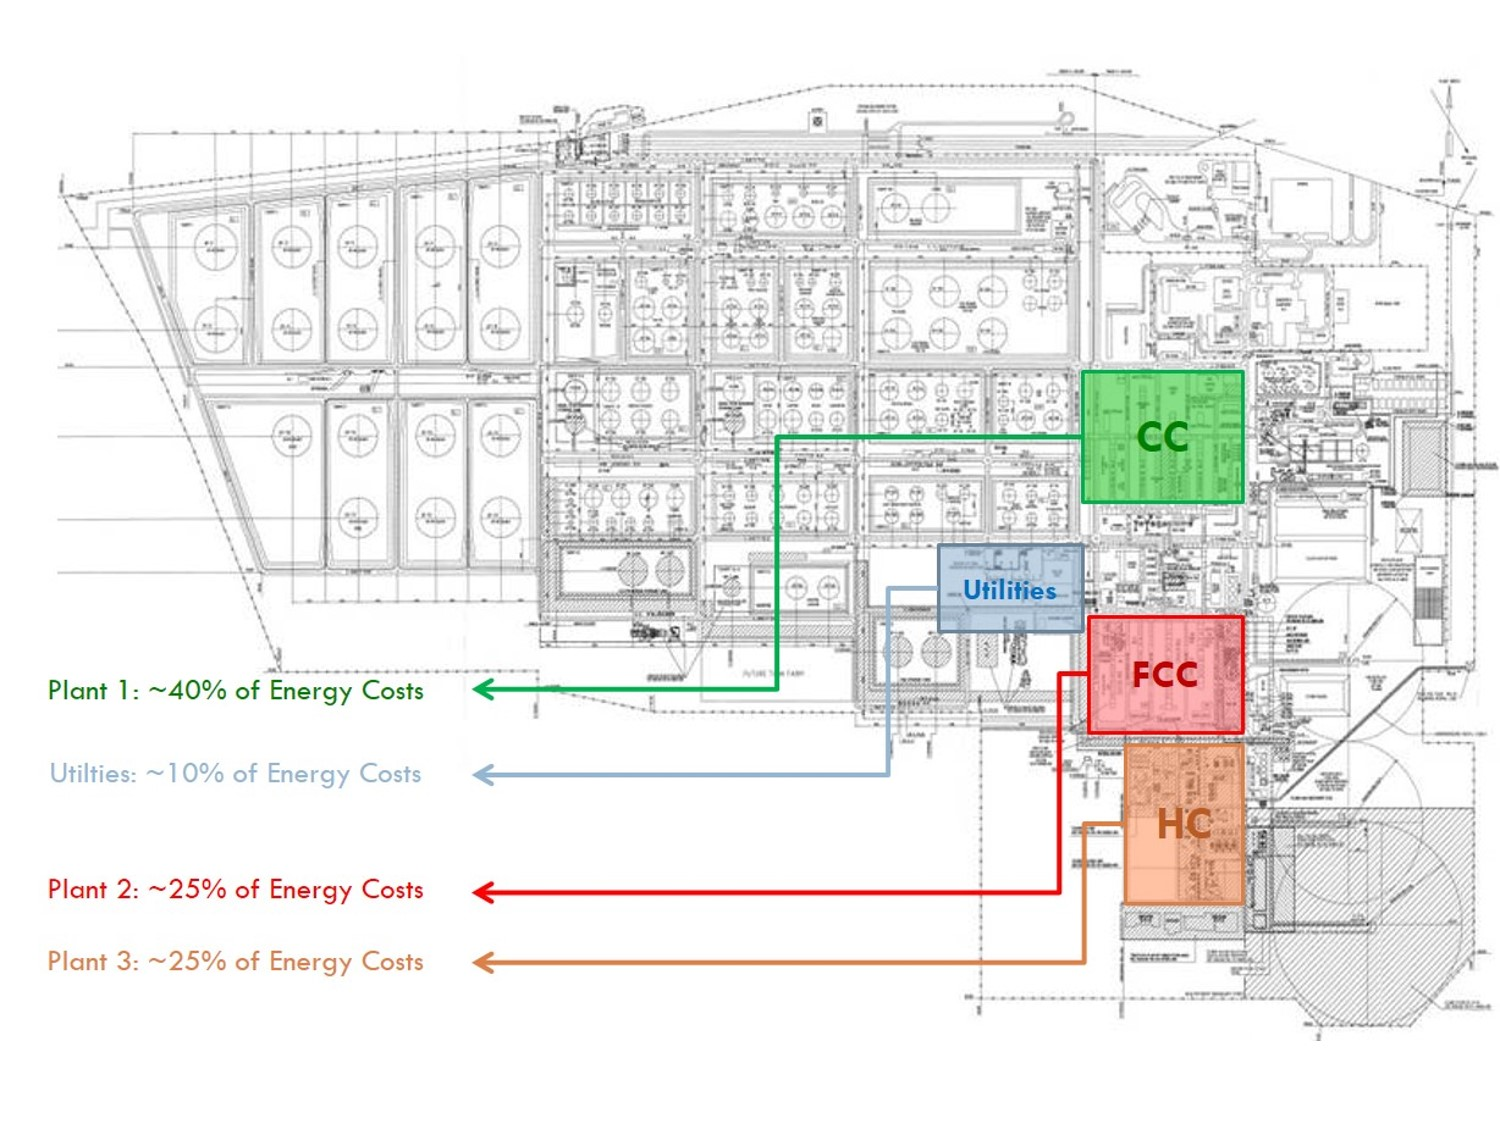 Refining Top Ref Project Process Flow Diagram Refinery Plant Boiled Water